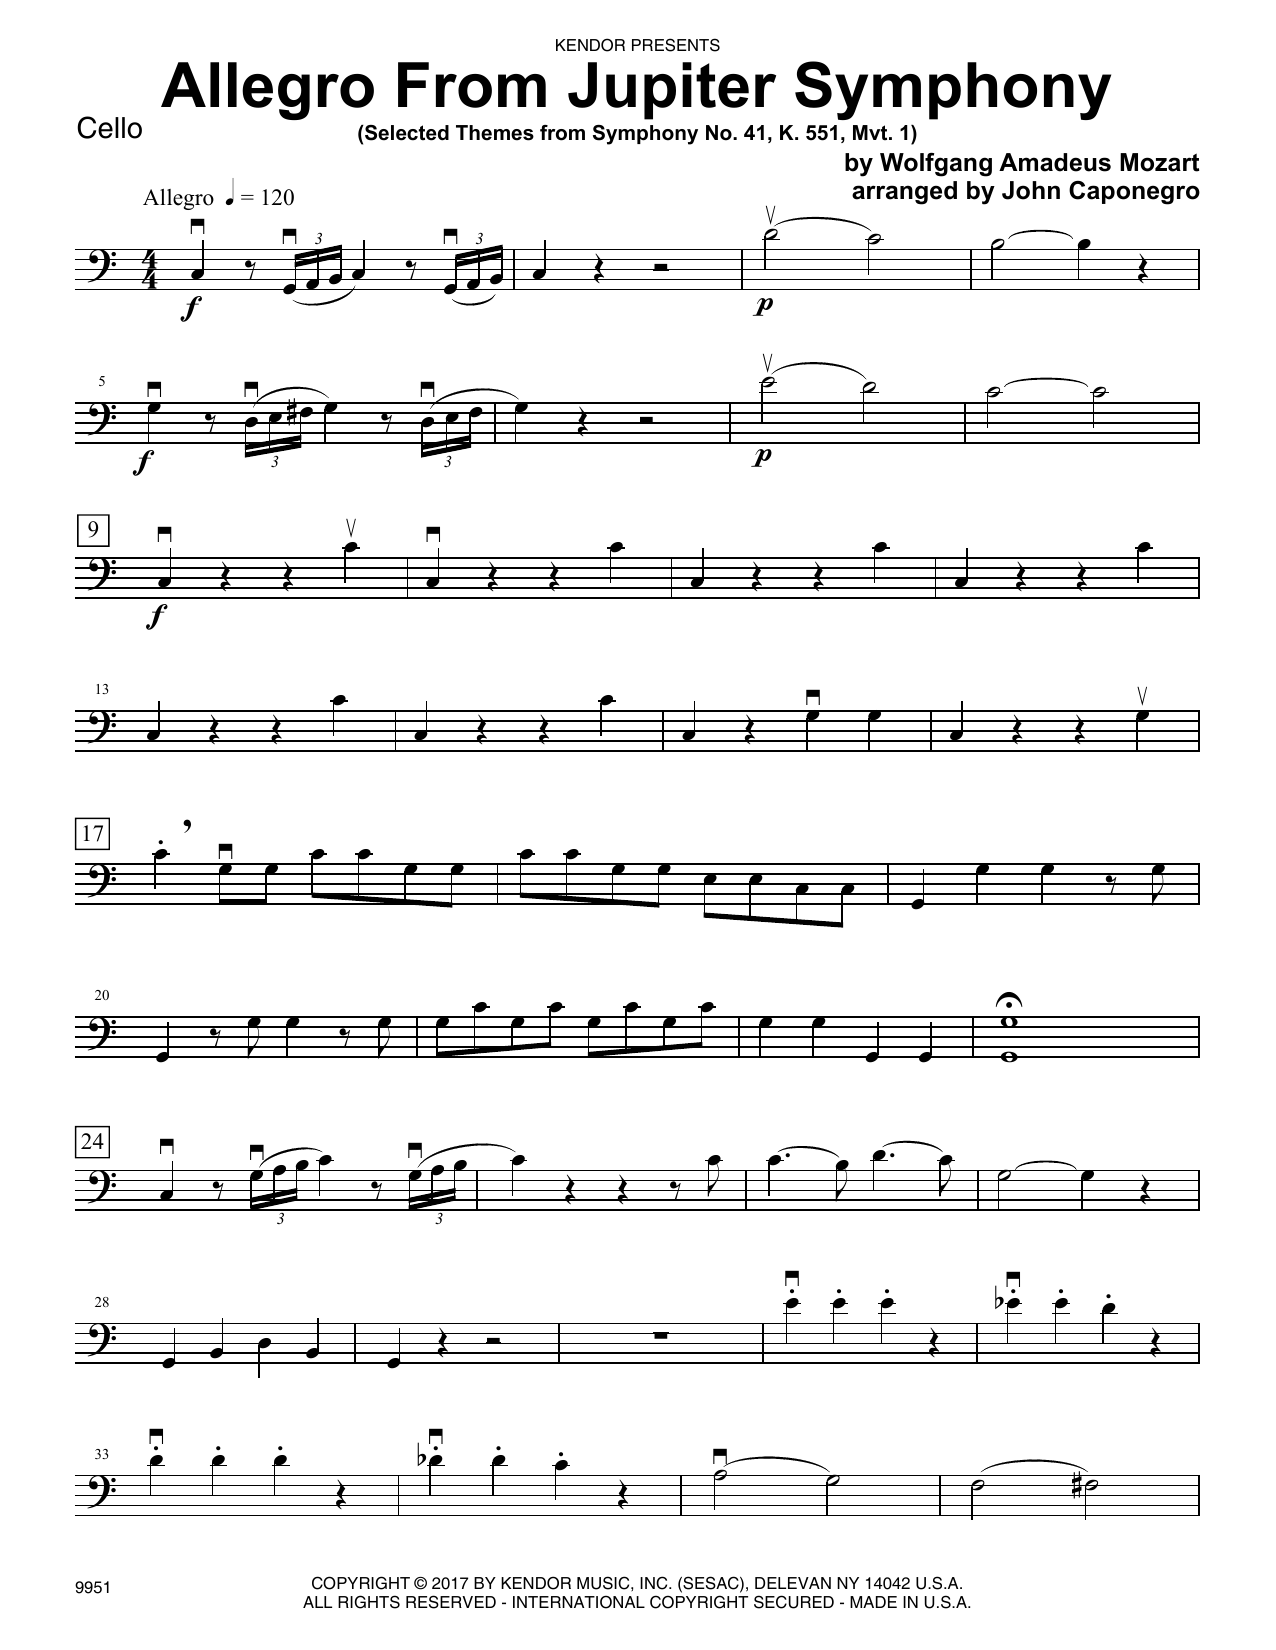 John Caponegro Allegro From Jupiter Symphony - Cello sheet music preview music notes and score for Orchestra including 3 page(s)